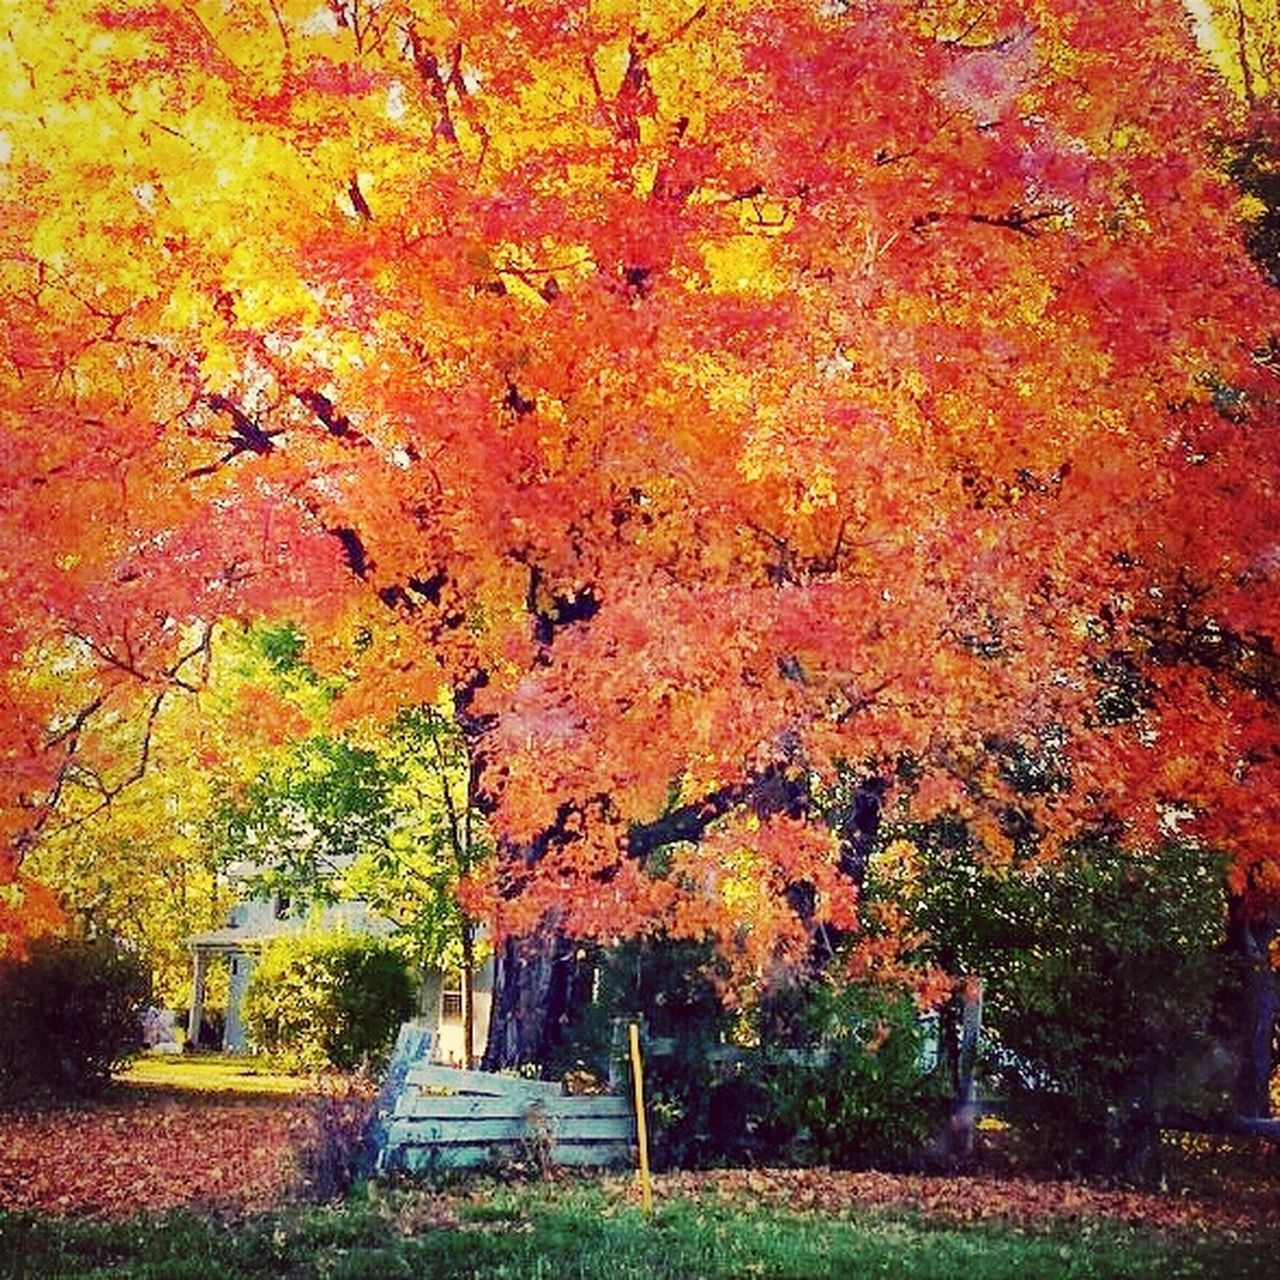 change, autumn, leaf, tree, orange color, nature, beauty in nature, maple tree, tranquility, outdoors, scenics, no people, tranquil scene, day, maple leaf, park - man made space, red, maple